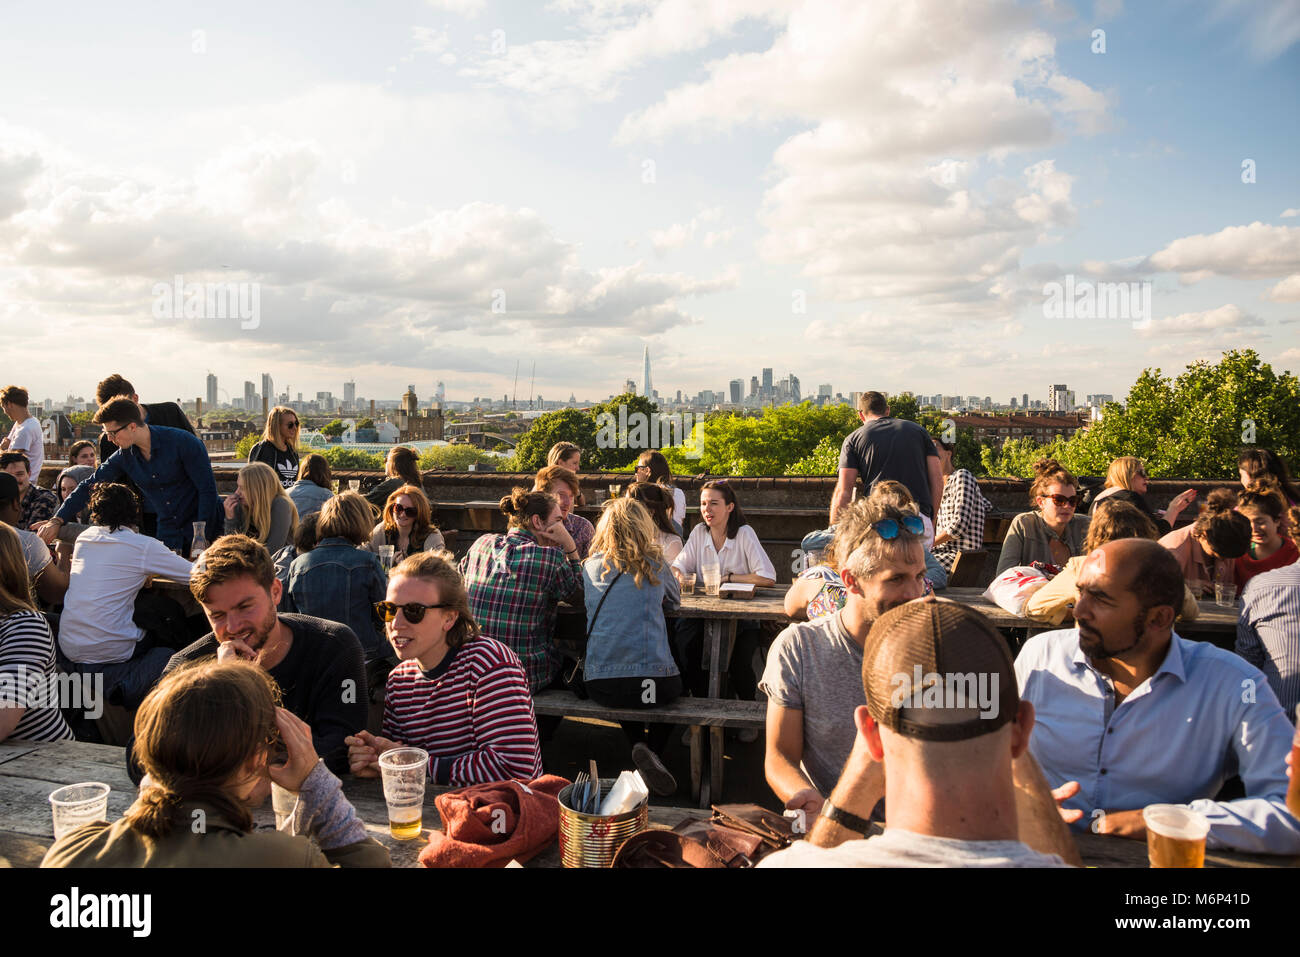 People socialising and enjoying a drink together at Franks Cafe outdoor rooftop bar with spectacular view of the - Stock Image